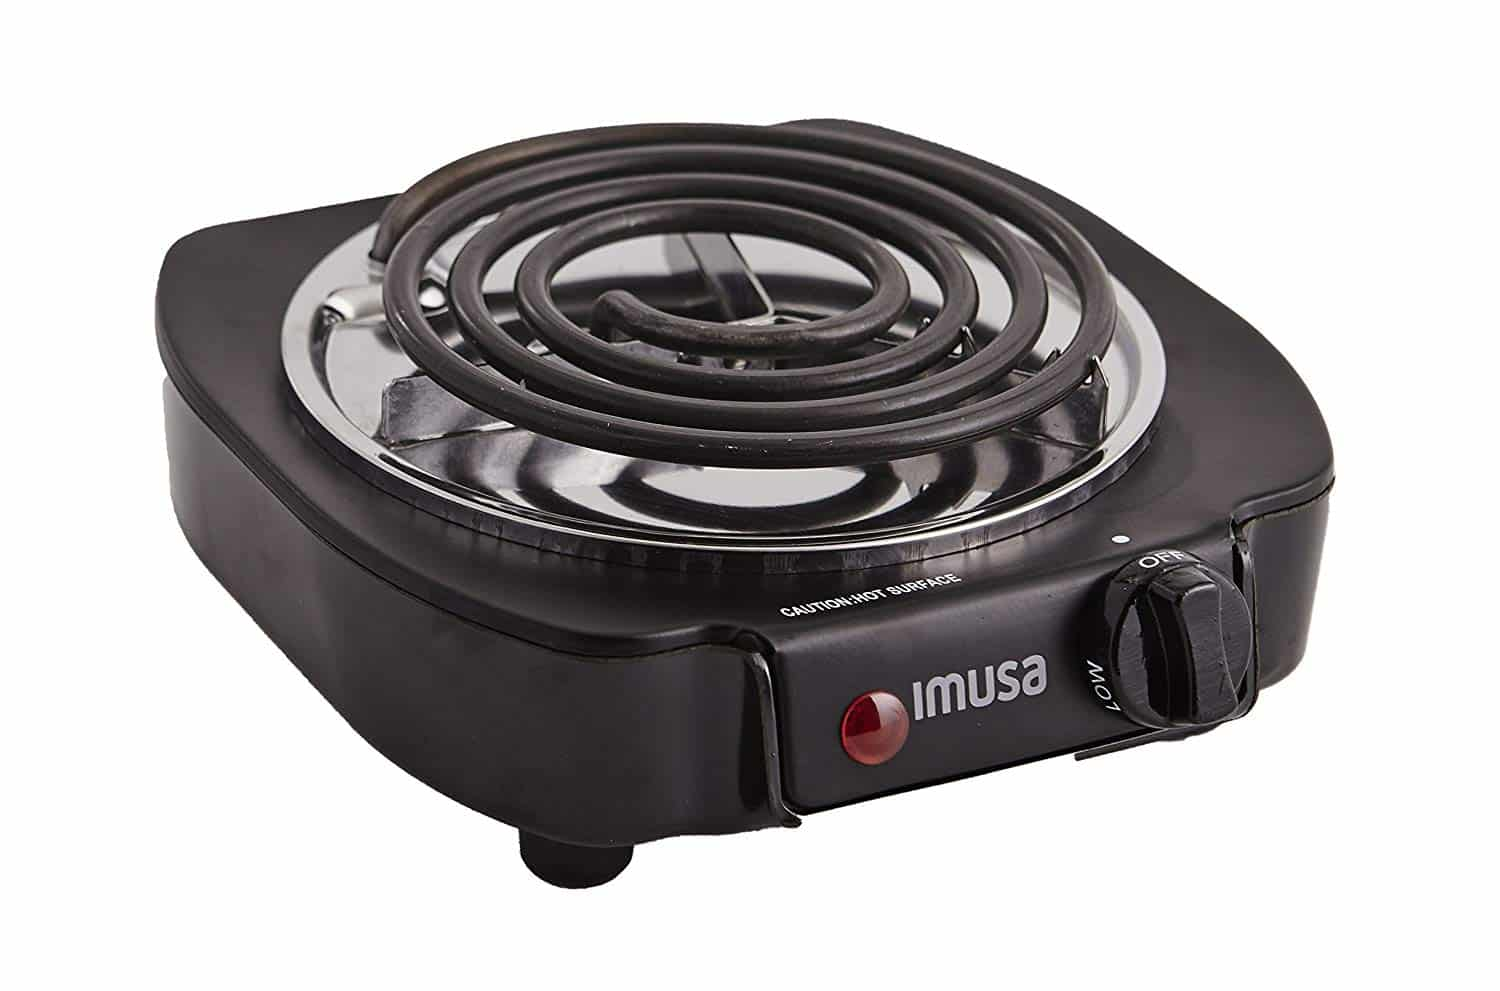 IMUSA Portable Single Burner